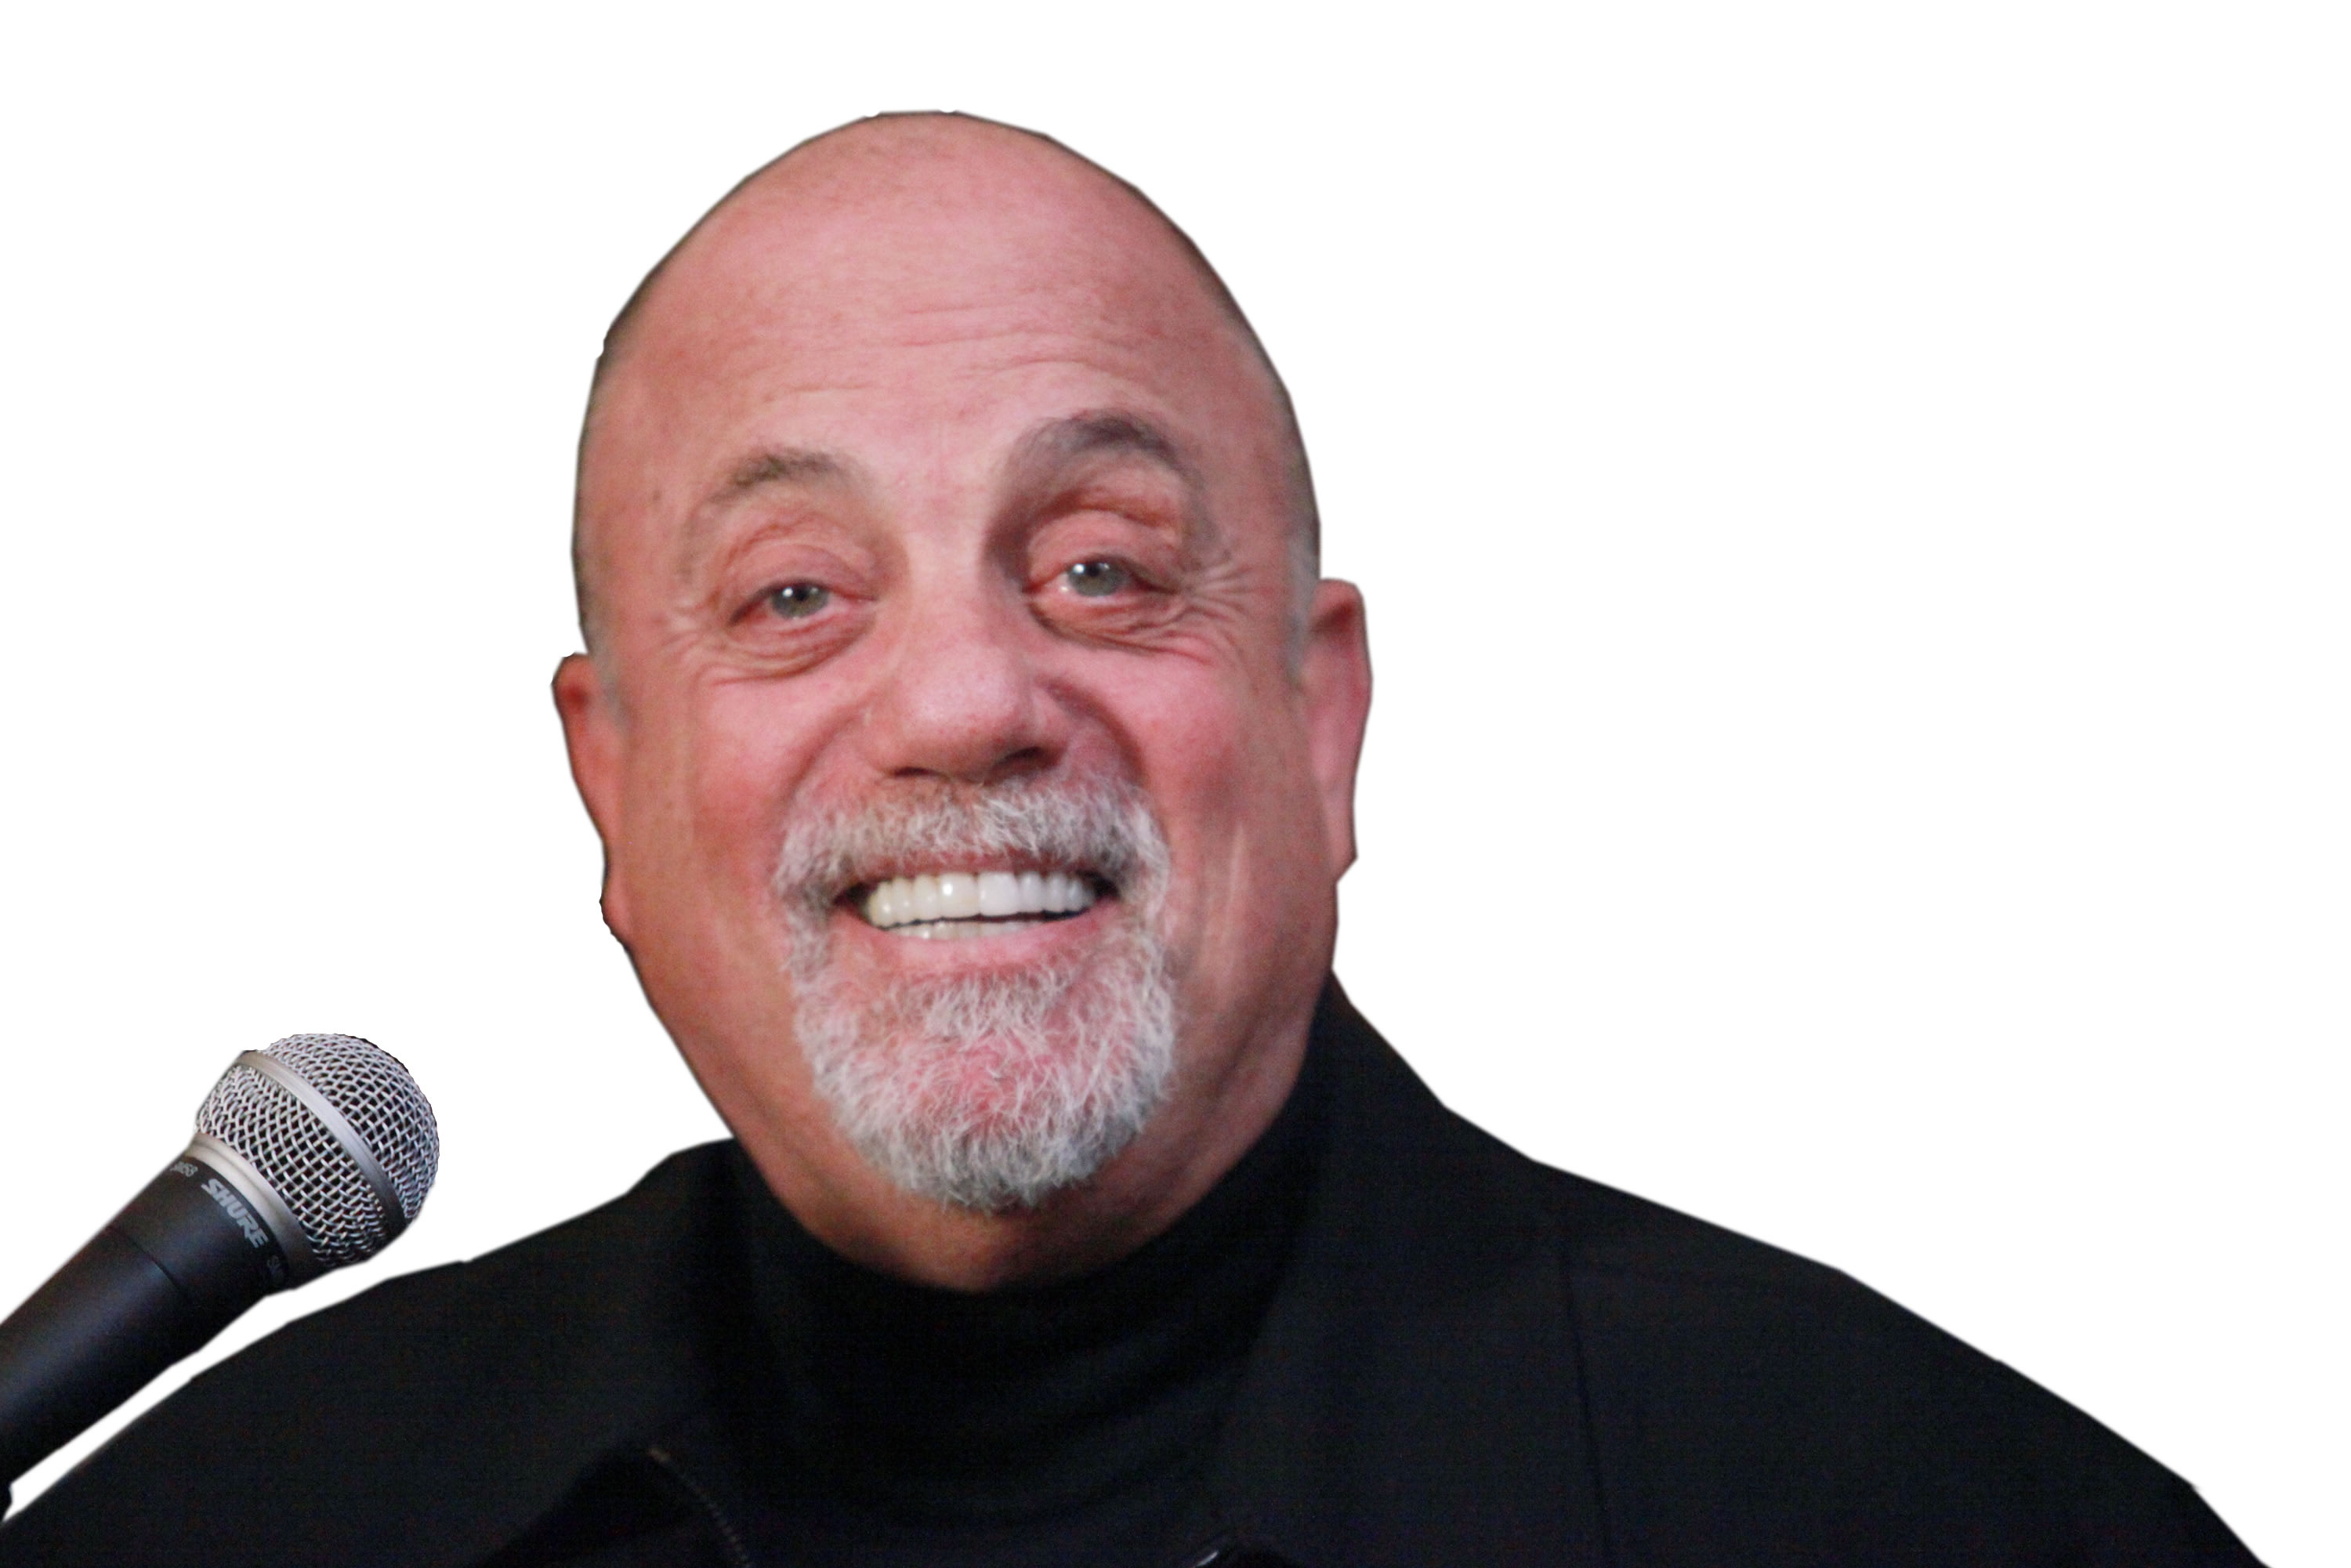 Singer Billy Joel - age: 71